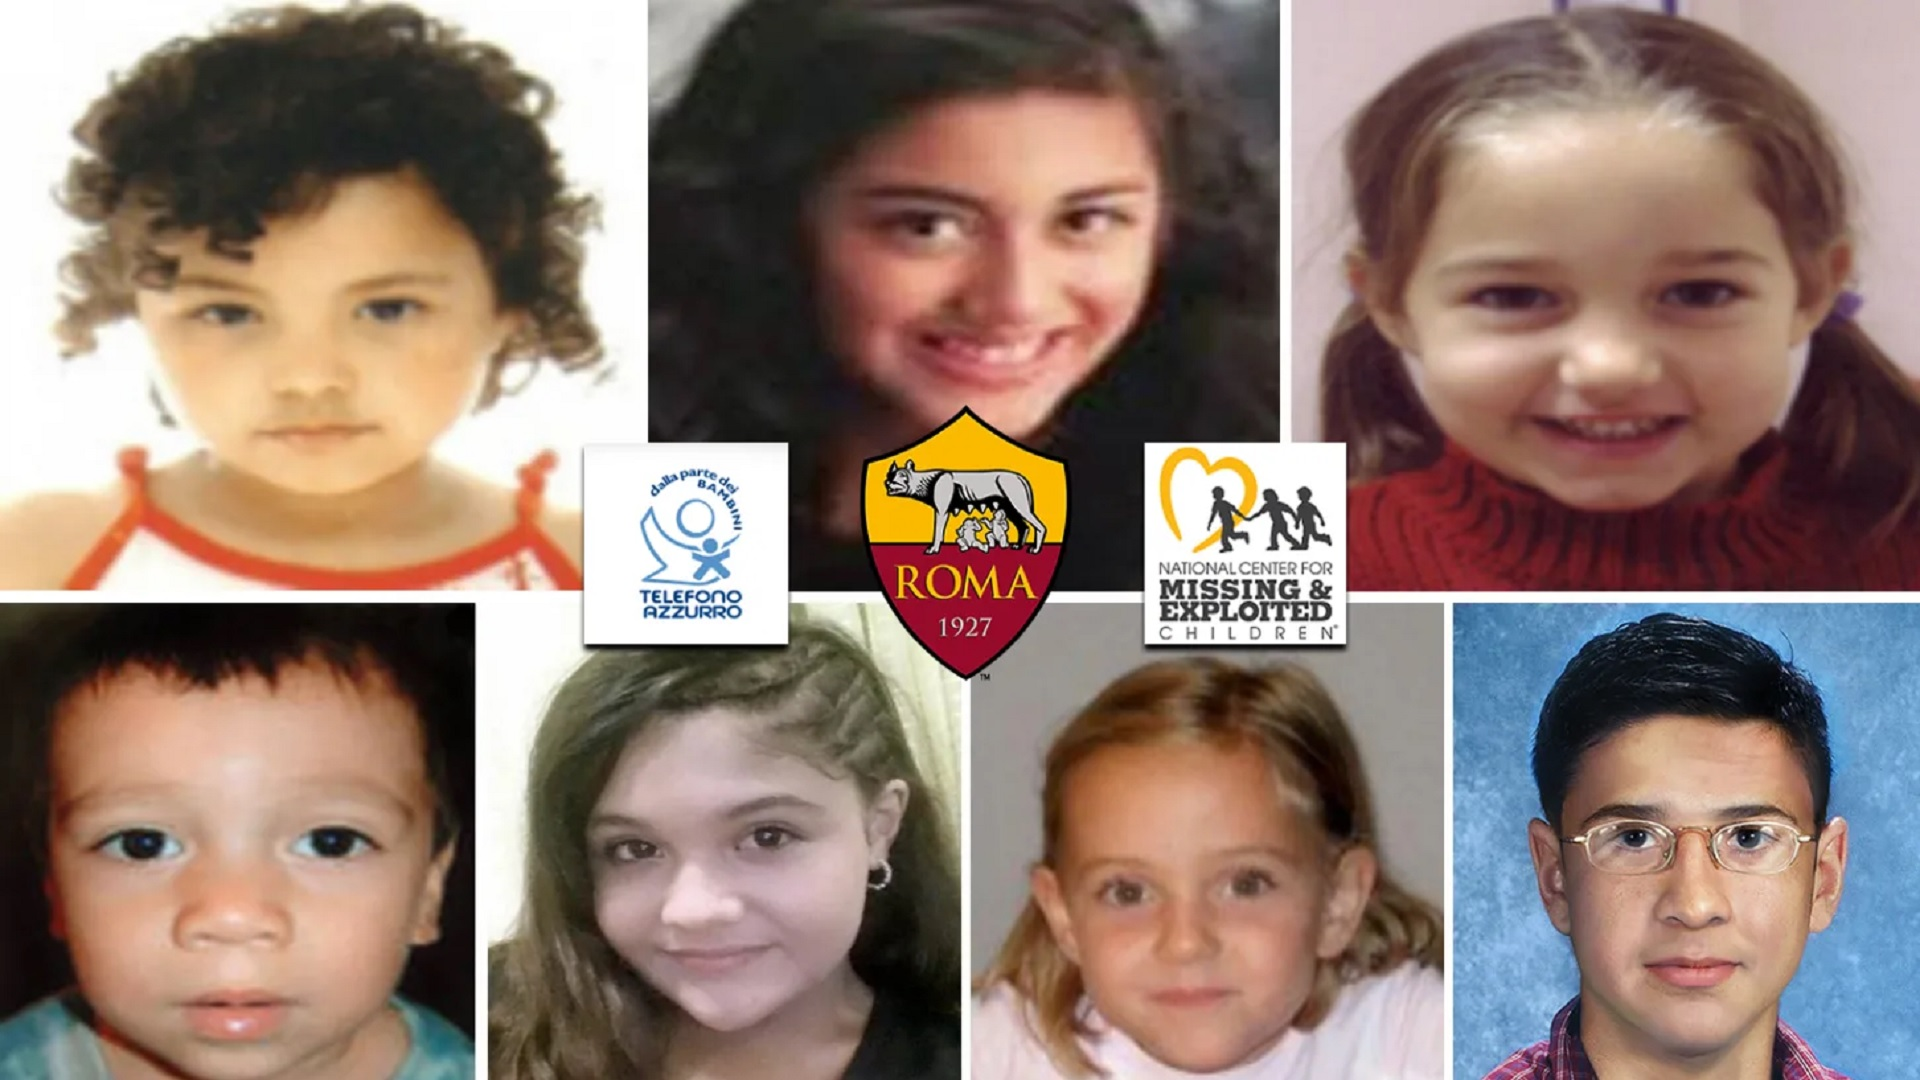 Roma's social transfer campaign to help search for missing children